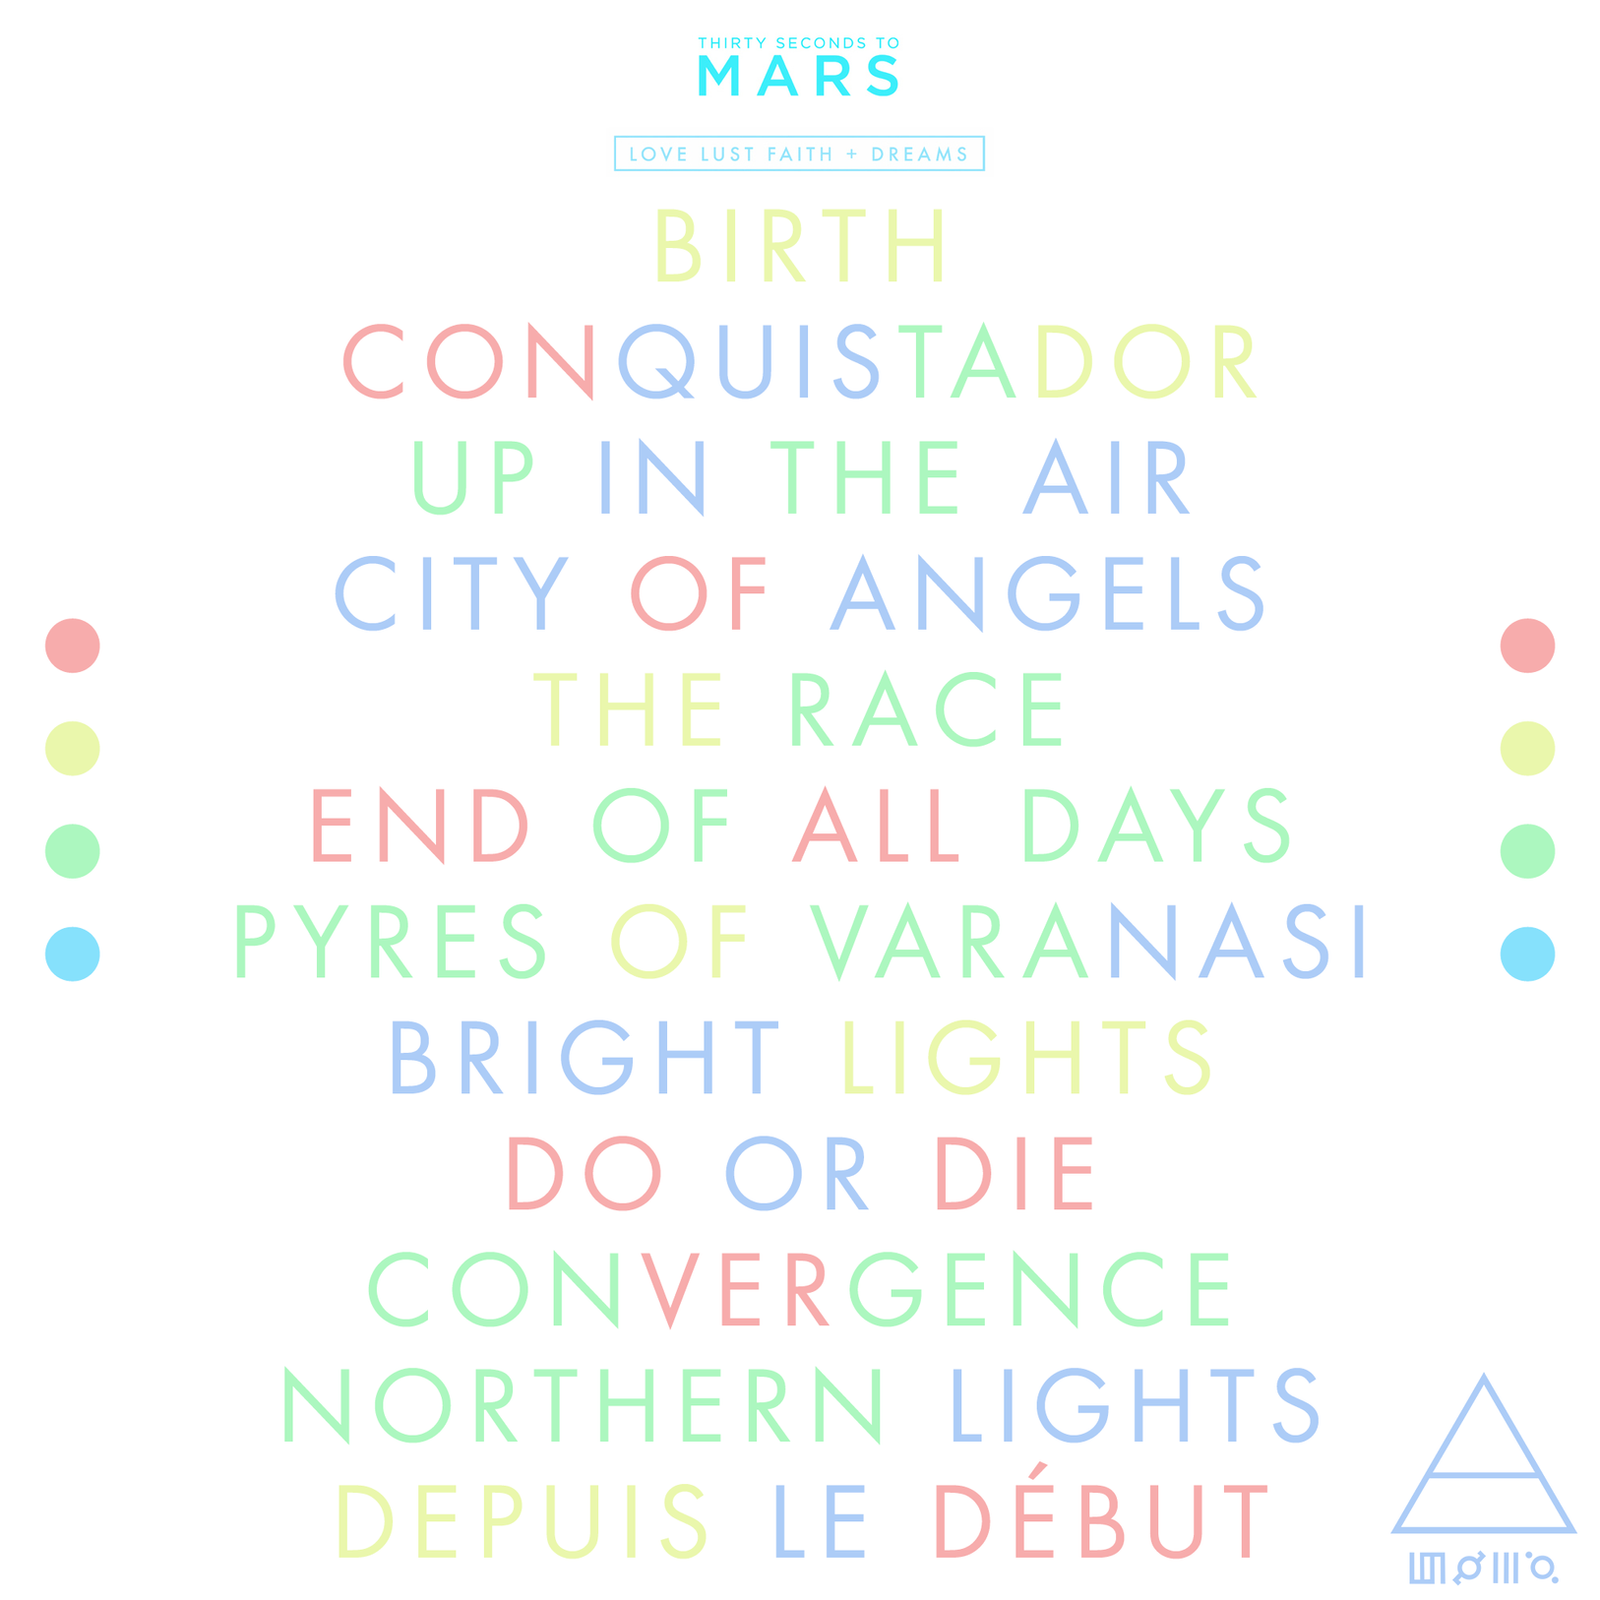 thirty seconds to mars love lust faith dreams by